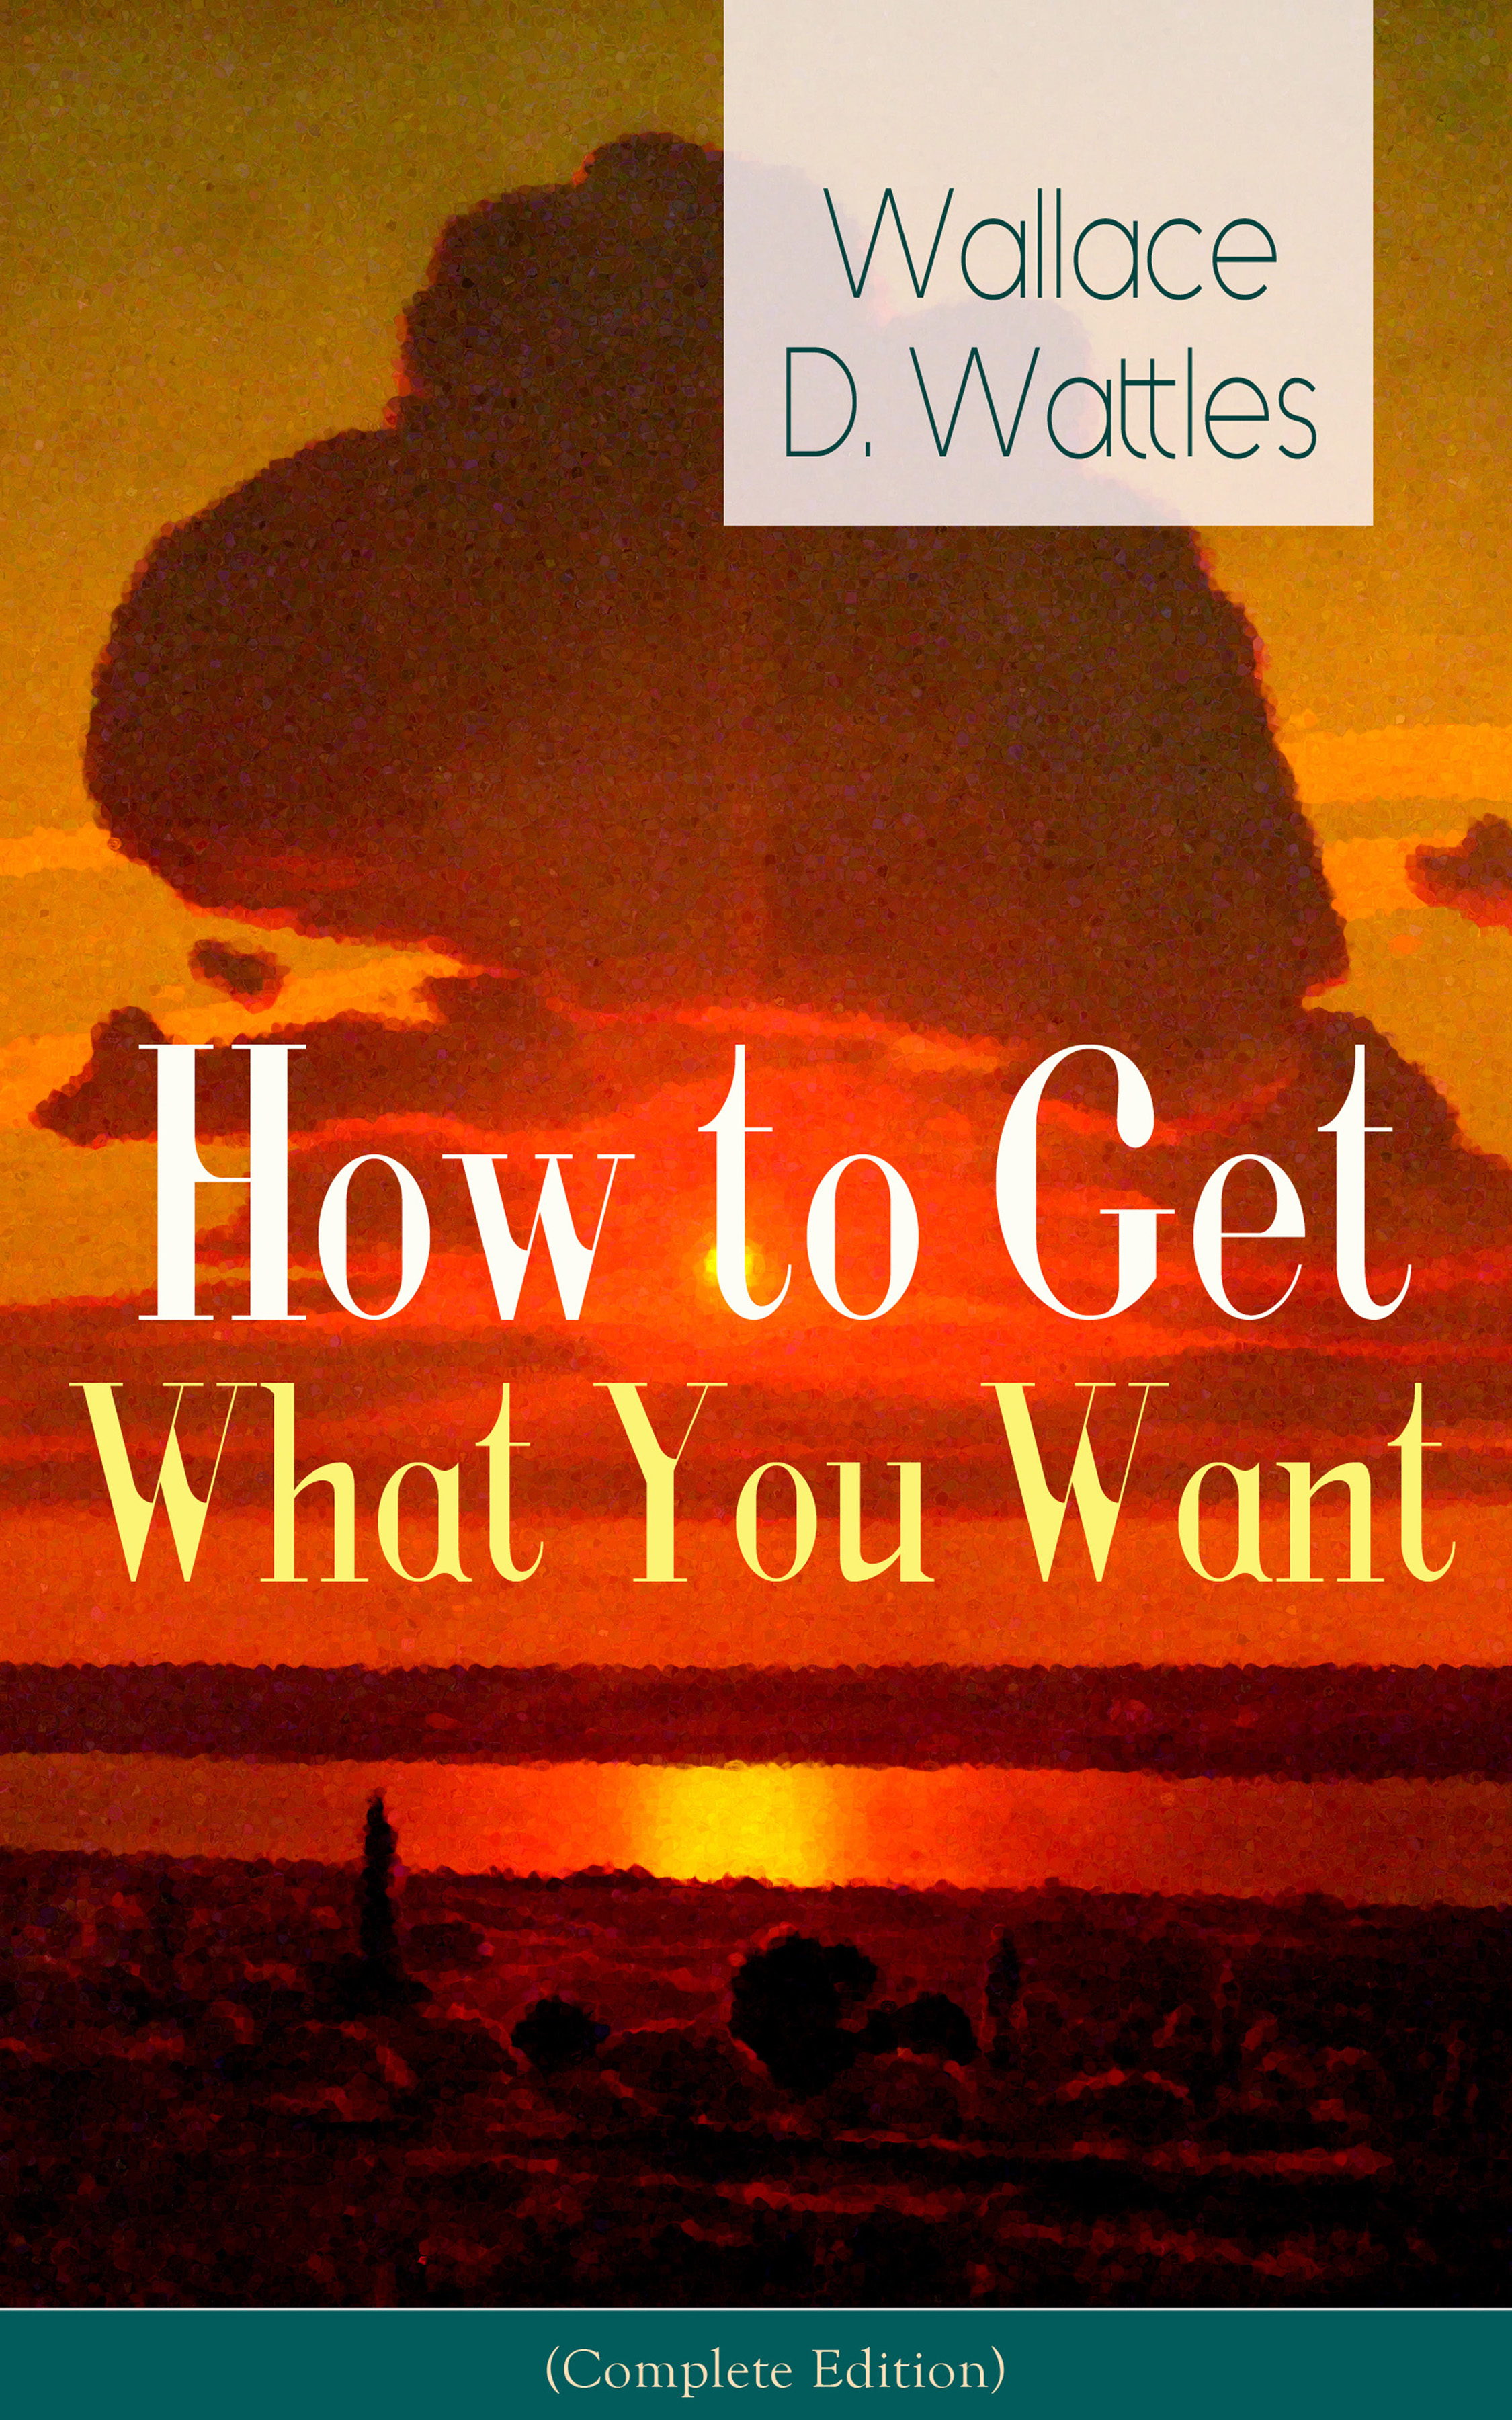 Wallace D. Wattles How to Get What You Want (Complete Edition): From one of The New Thought pioneers, author of The Science of Getting Rich, The Science of Being Well, The Science of Being Great, Hellfire Harrison, How to Promote Yourself and A New Christ